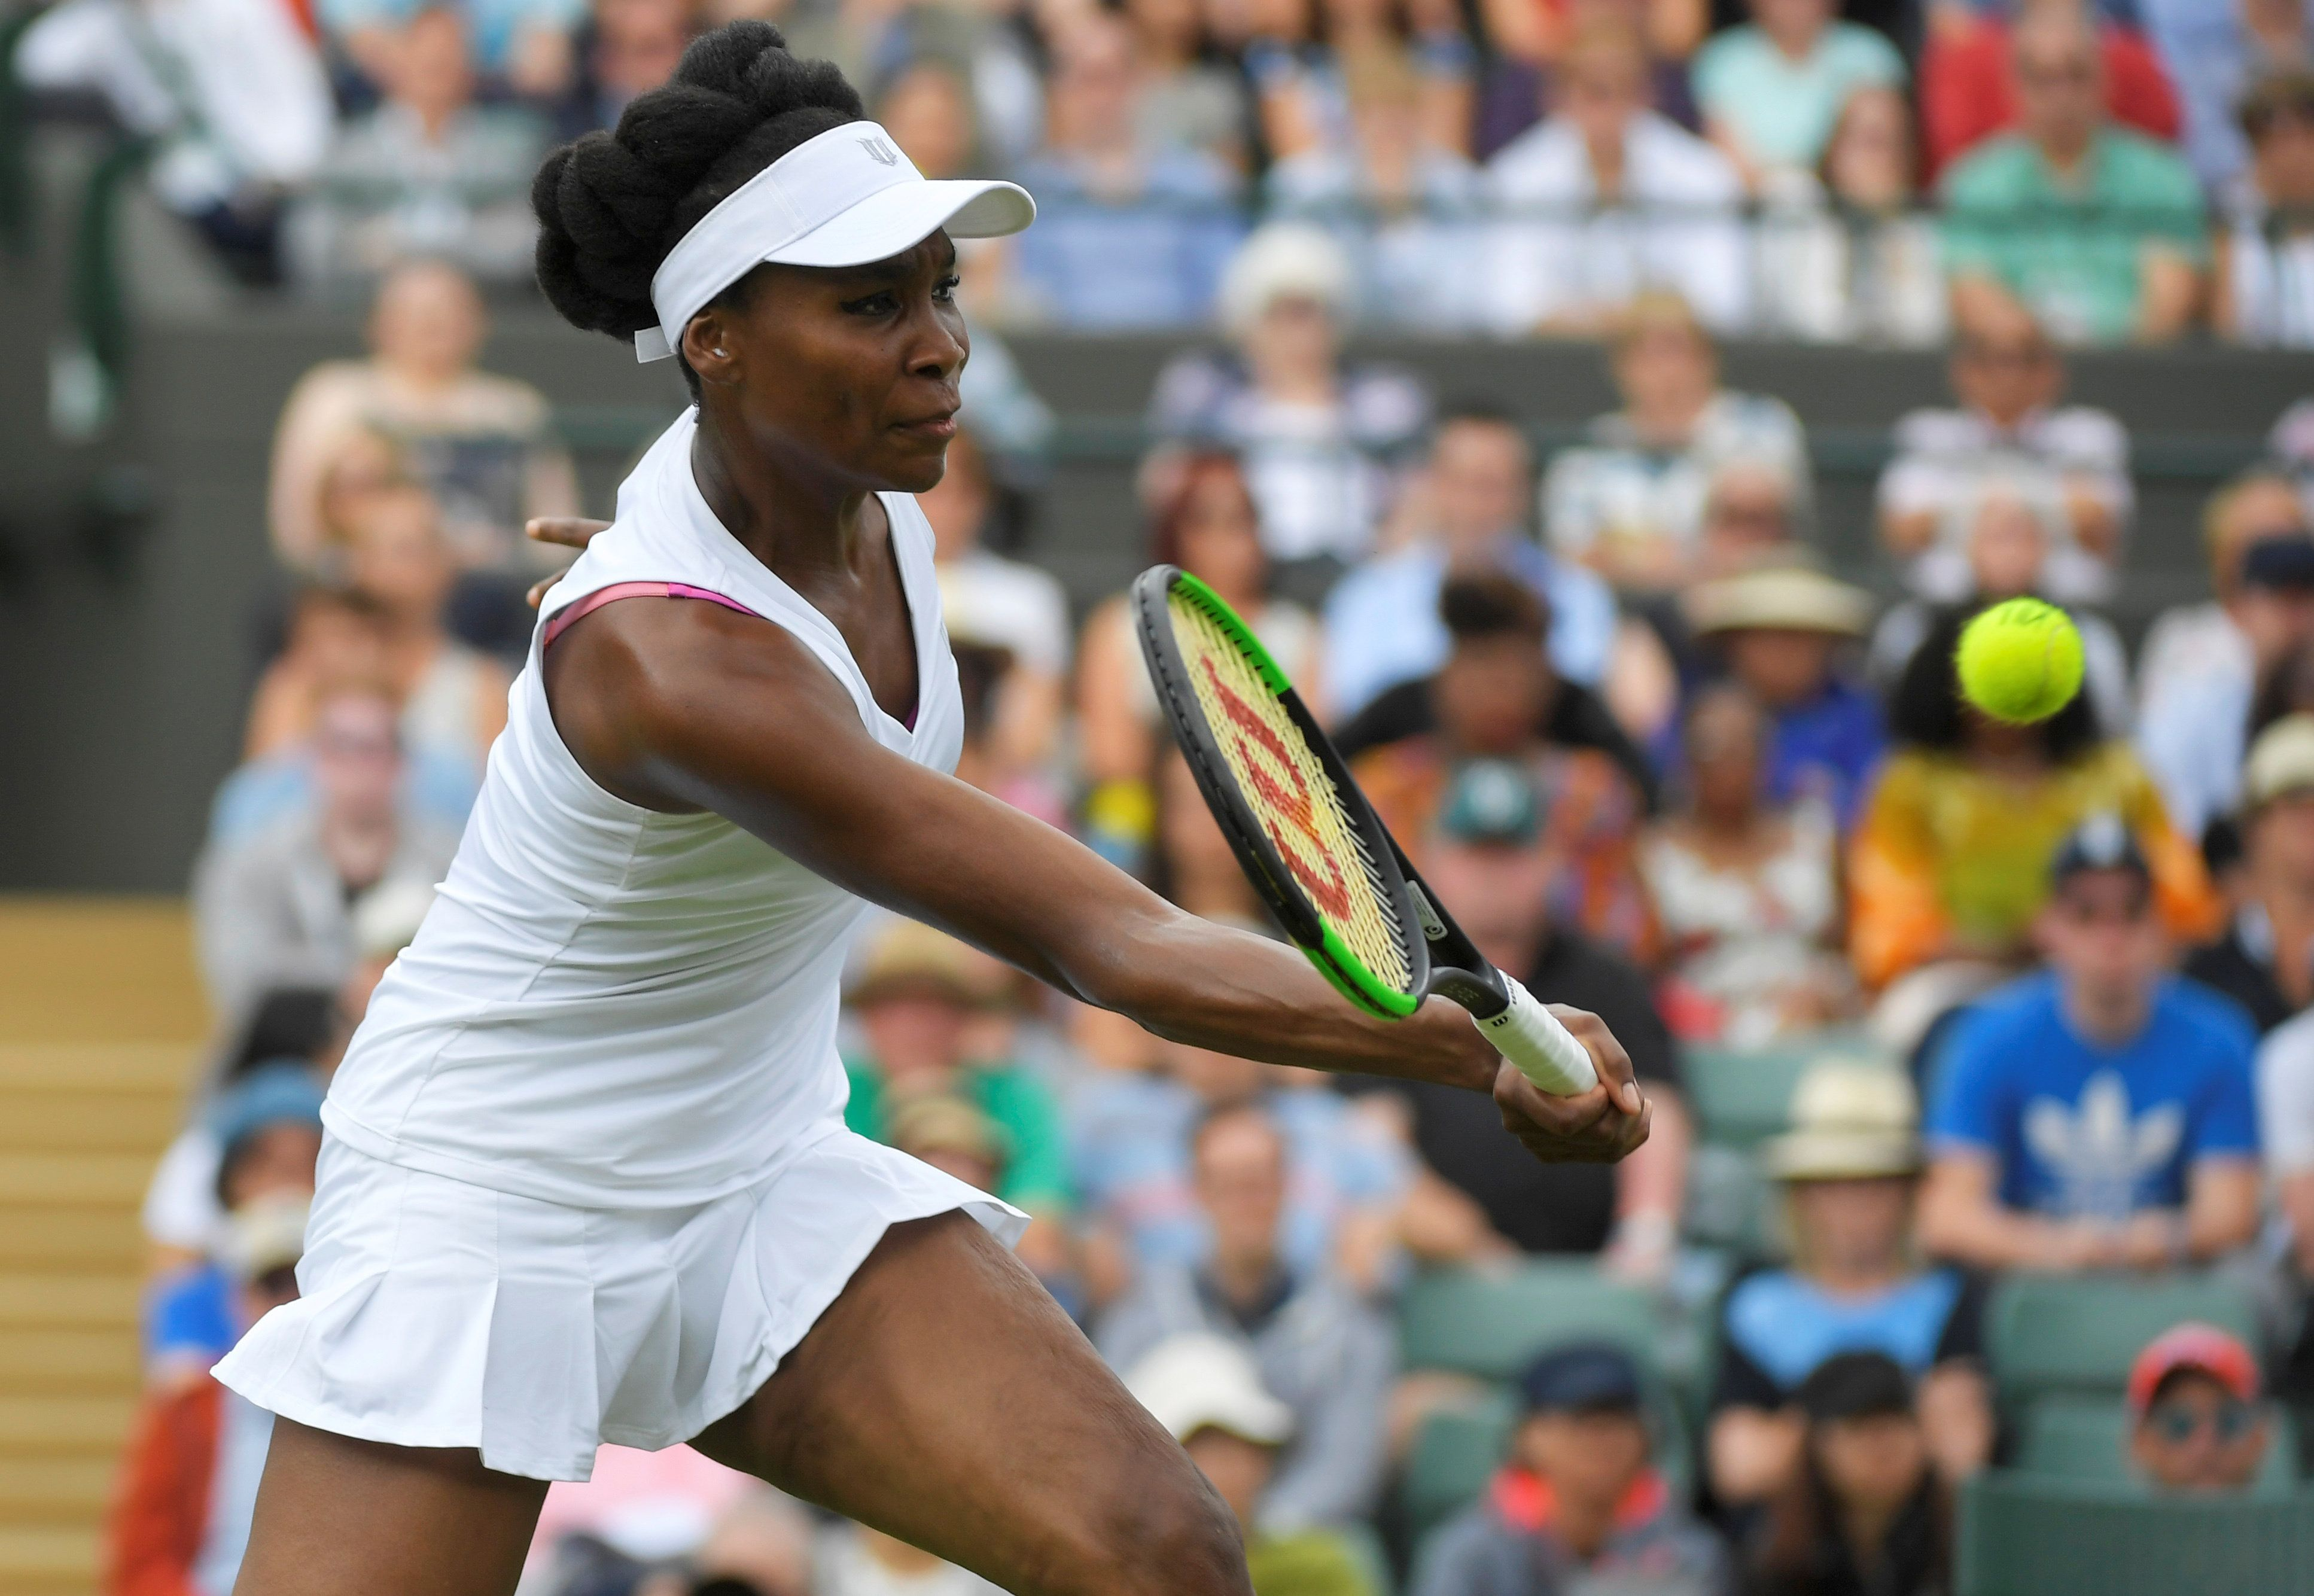 Tennis - Wimbledon - London, Britain - July 3, 2017   USA's Venus Williams in action during her first round match against Belgium's Elise Mertens    REUTERS/Toby Melville